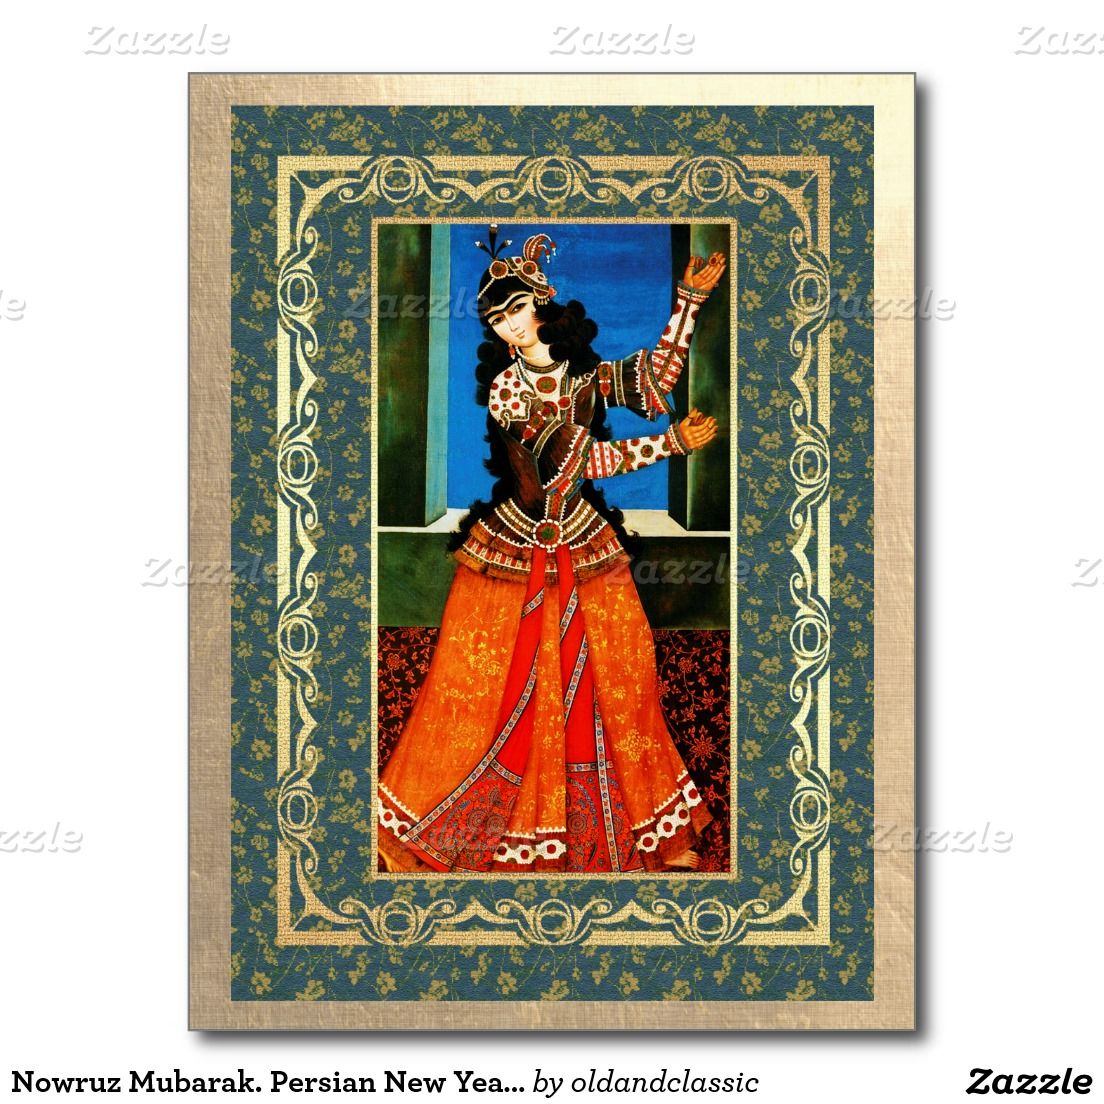 Nowruz mubarak persian new year postcards persian persian new year postcards kristyandbryce Gallery